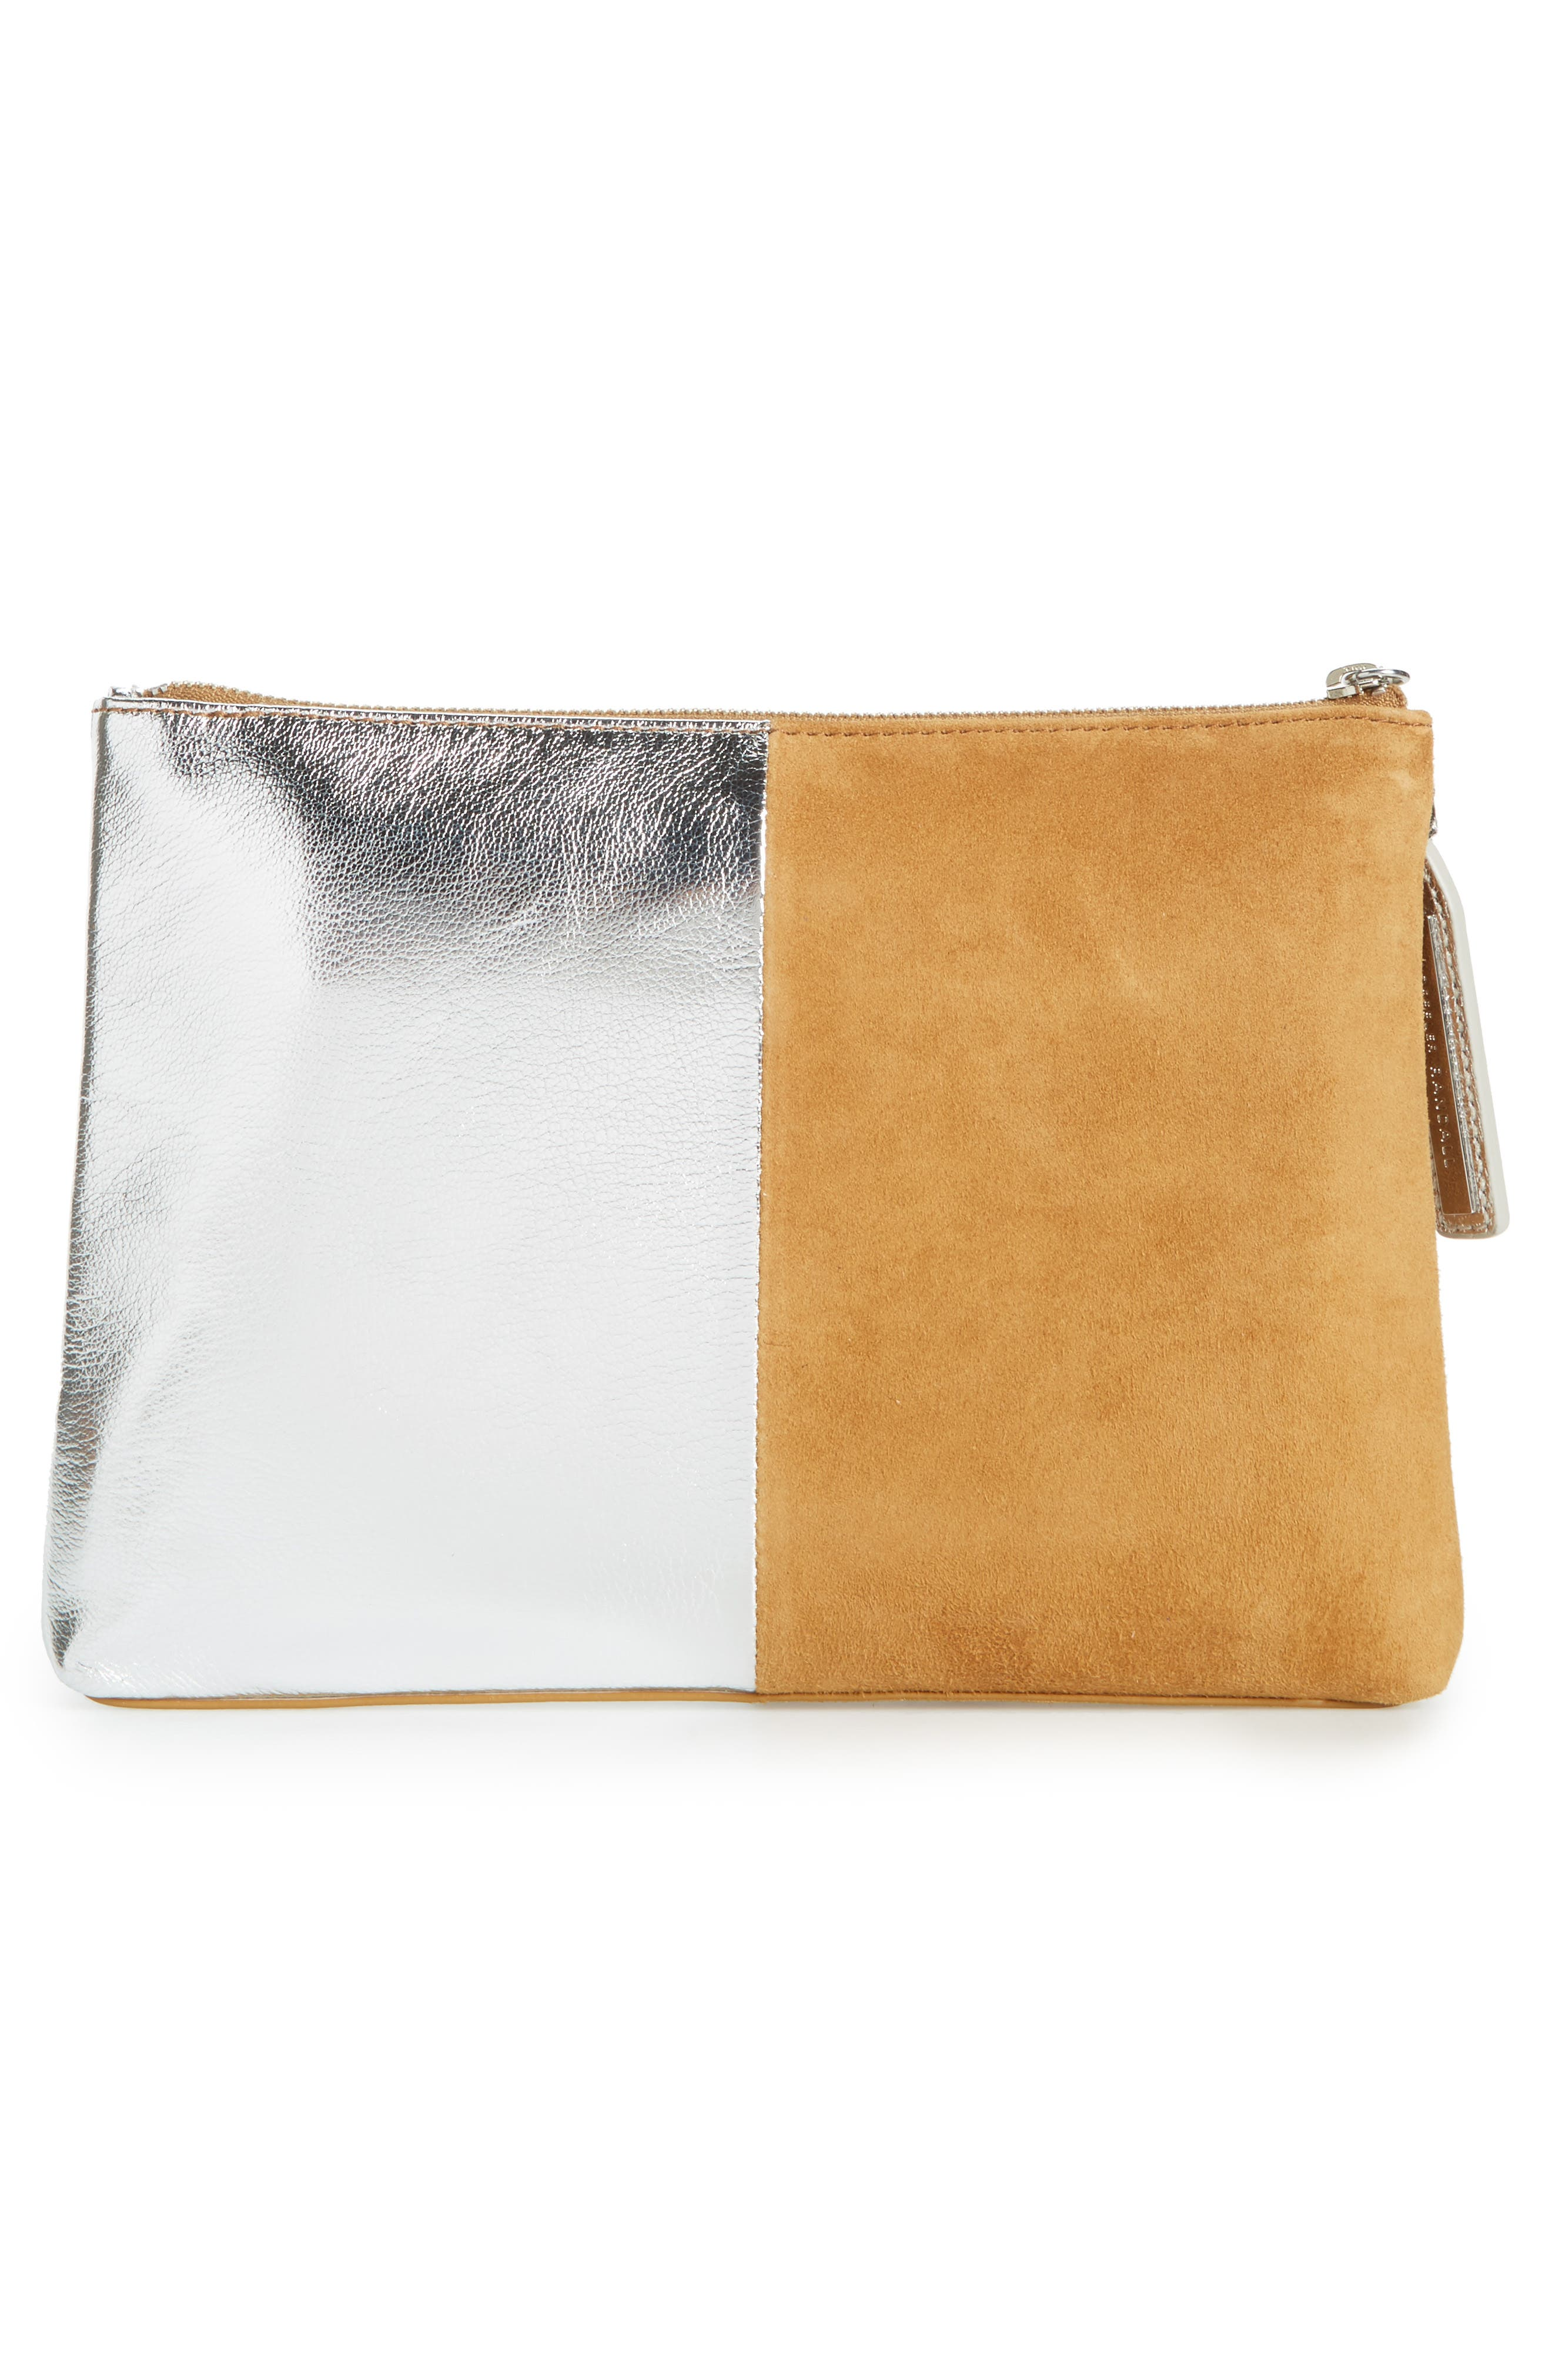 Tassel Metallic Leather & Suede Pouch,                             Alternate thumbnail 3, color,                             269